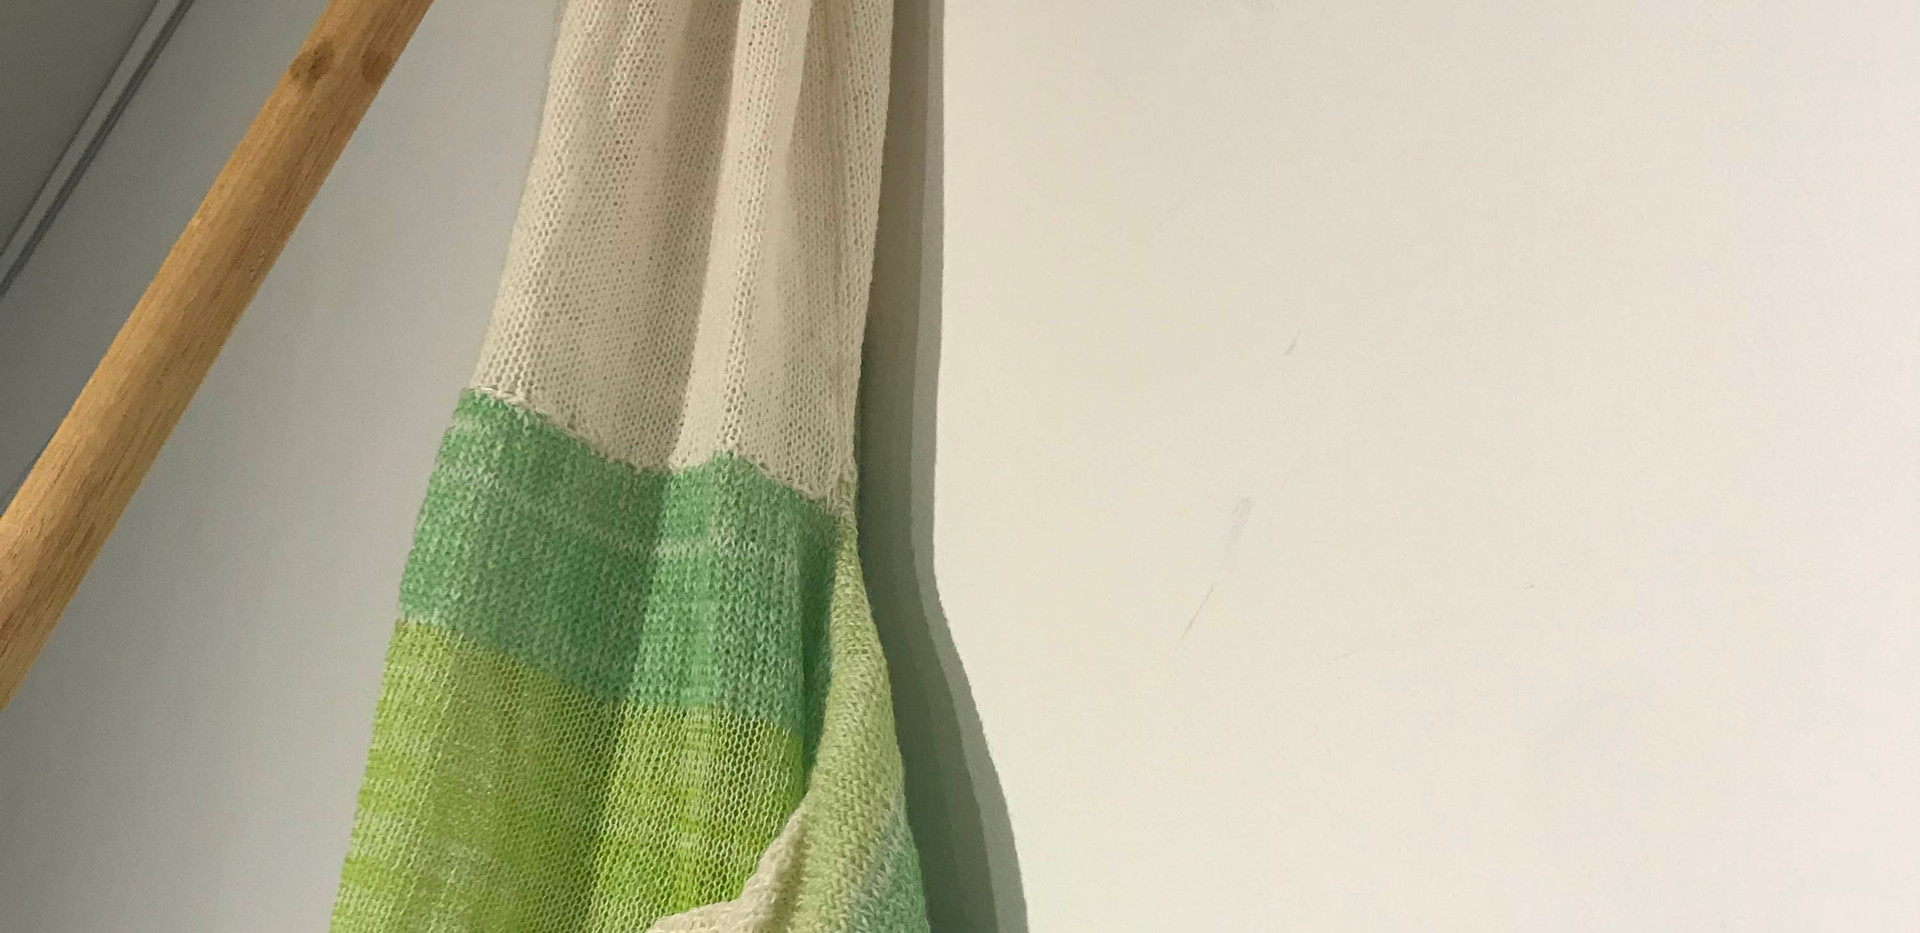 Digital Materiality - Coded Textiles